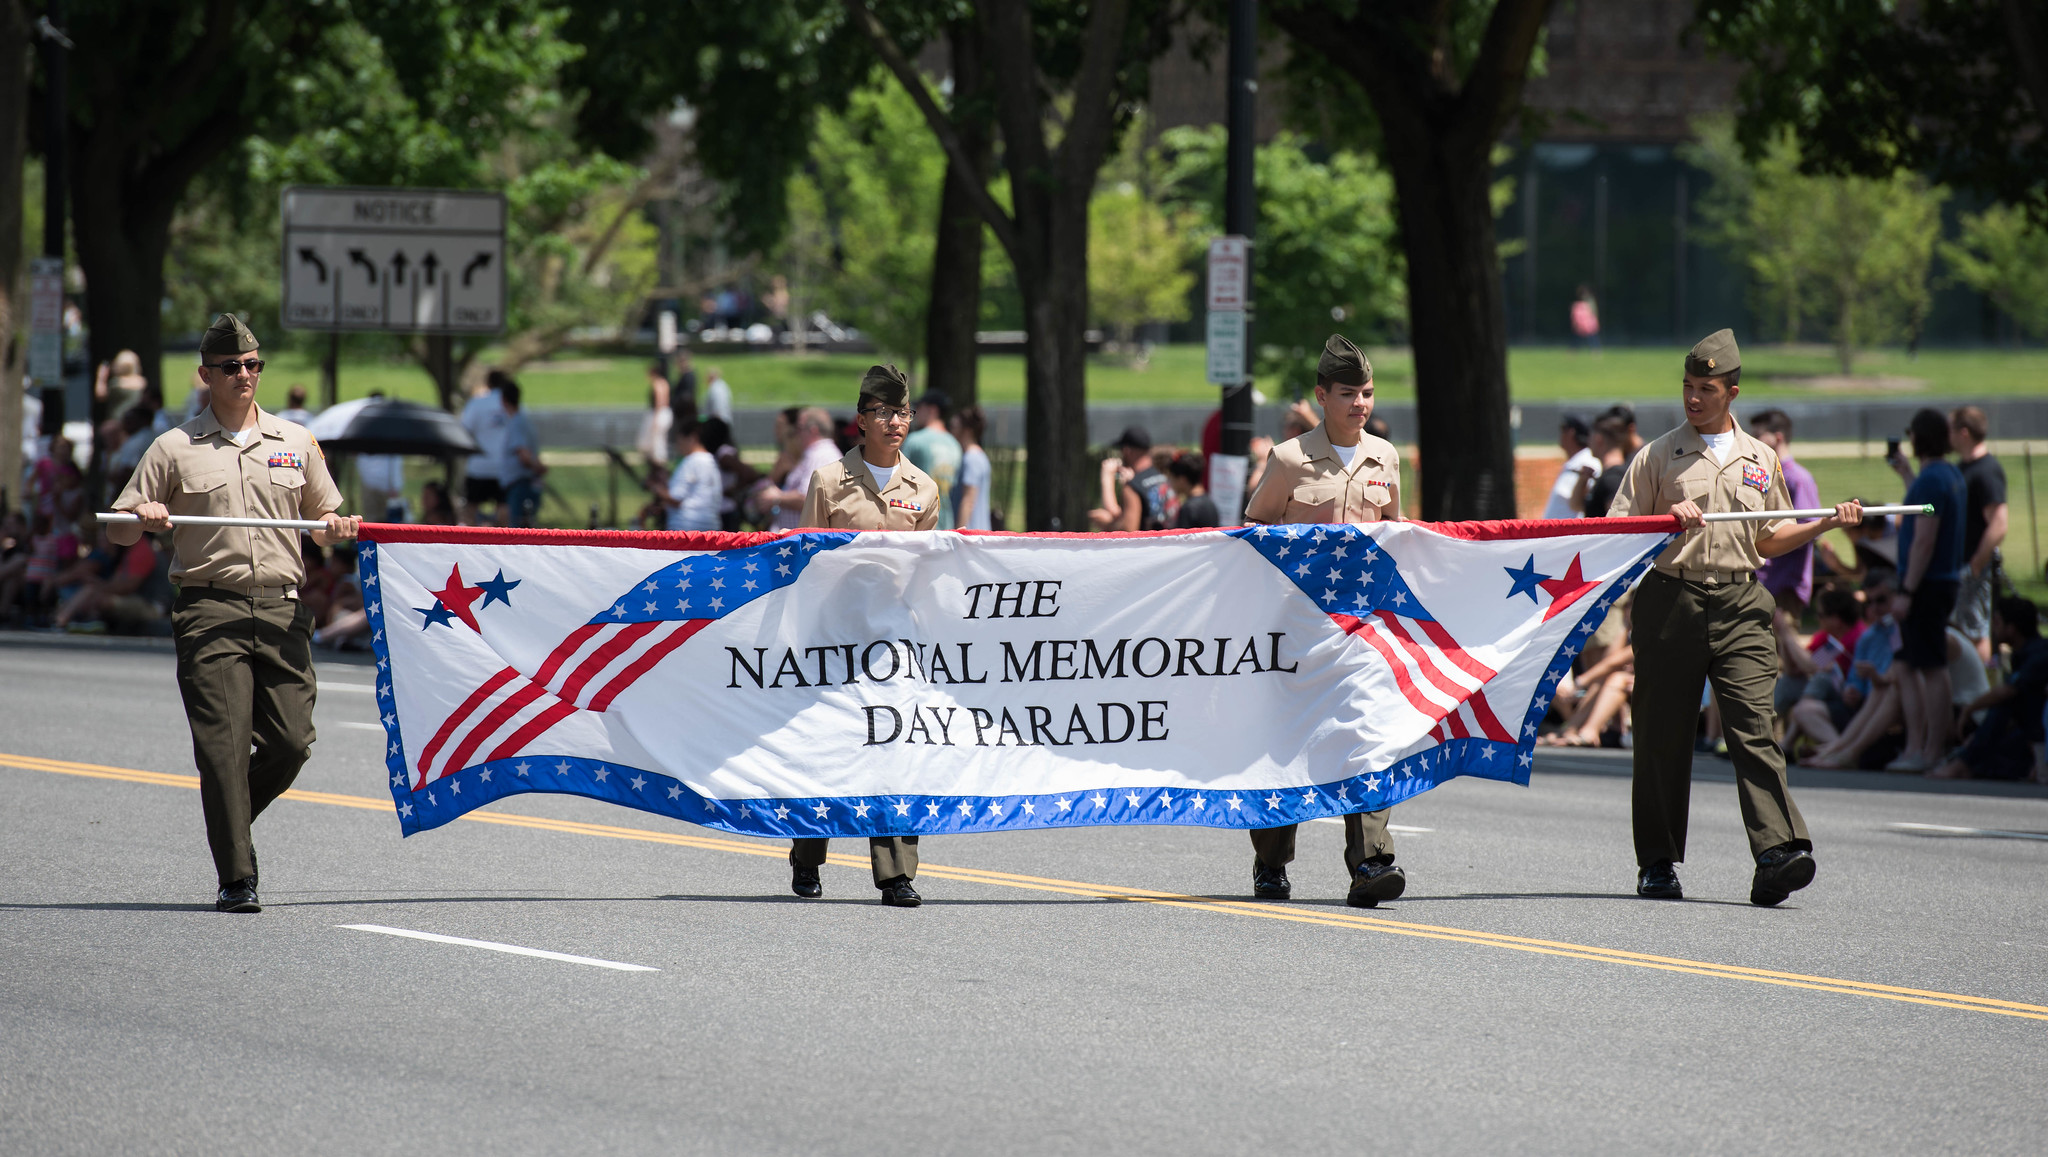 Soldiers assigned to the 3d U.S. Infantry Regiment (The Old Guard), participate in the National Memorial Day Parade in Washington on May 29, 2017. (U.S. Army photos by Sgt. George Huley/Army)